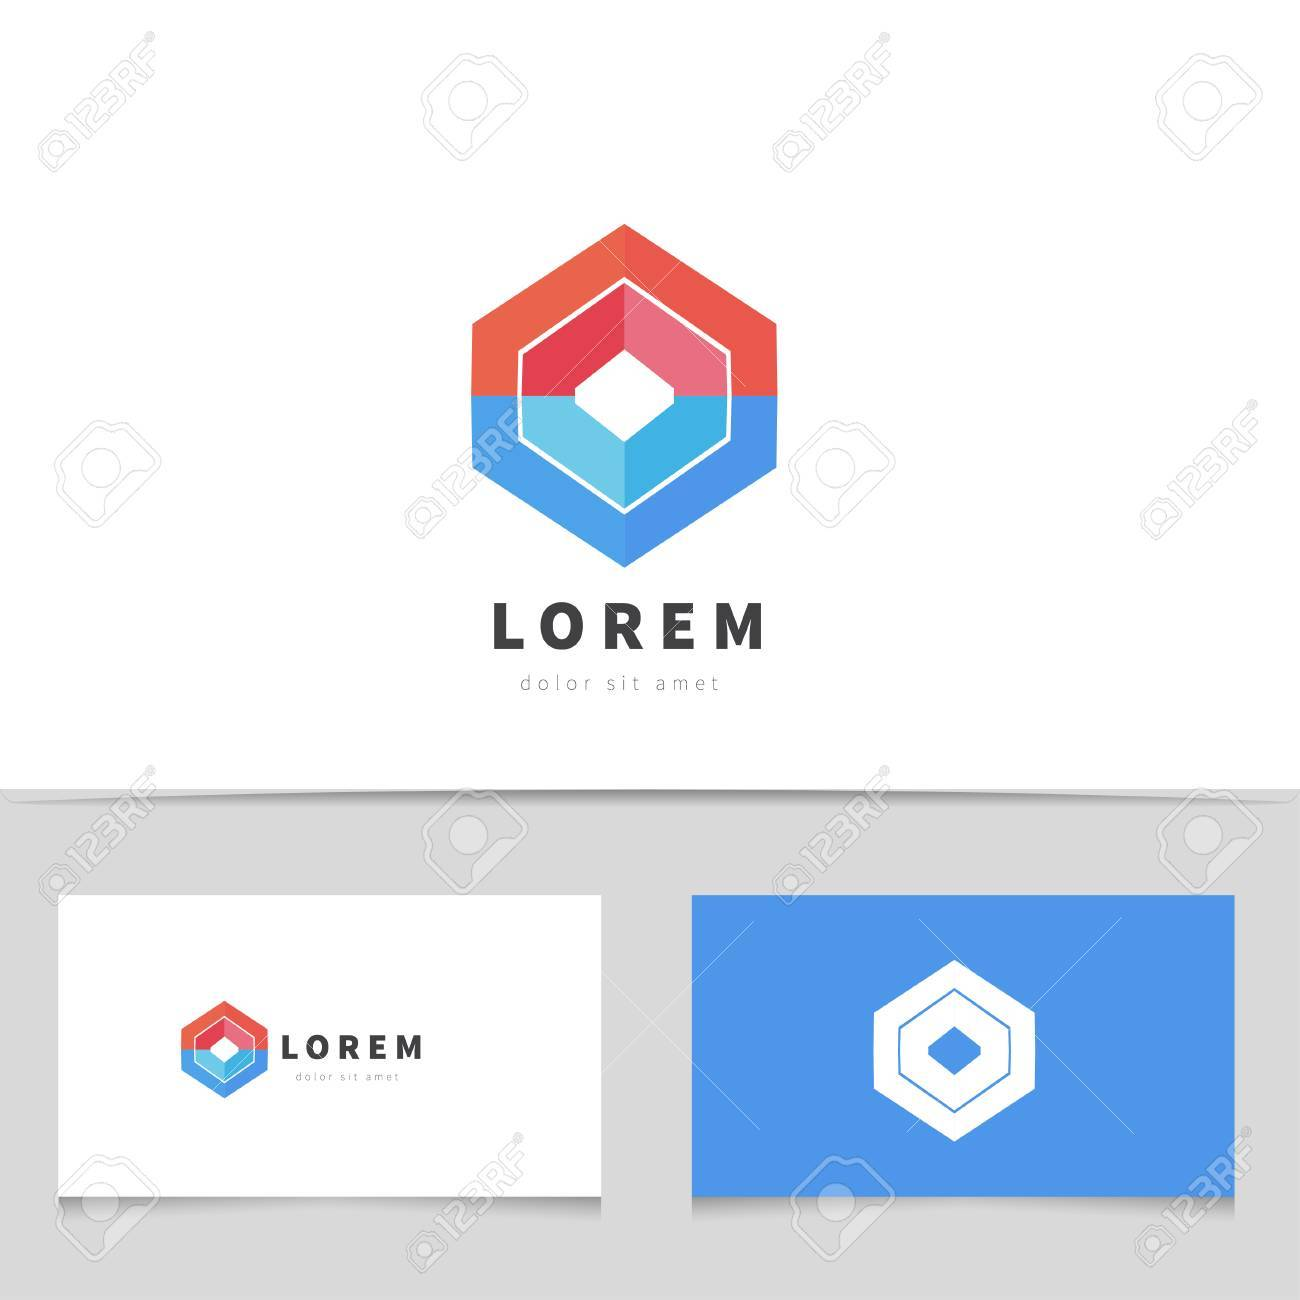 Abstract Hexagon Logo Icon With Business Card Template. Creative Logotype  For Your Company. Vector  Bus Pass Template